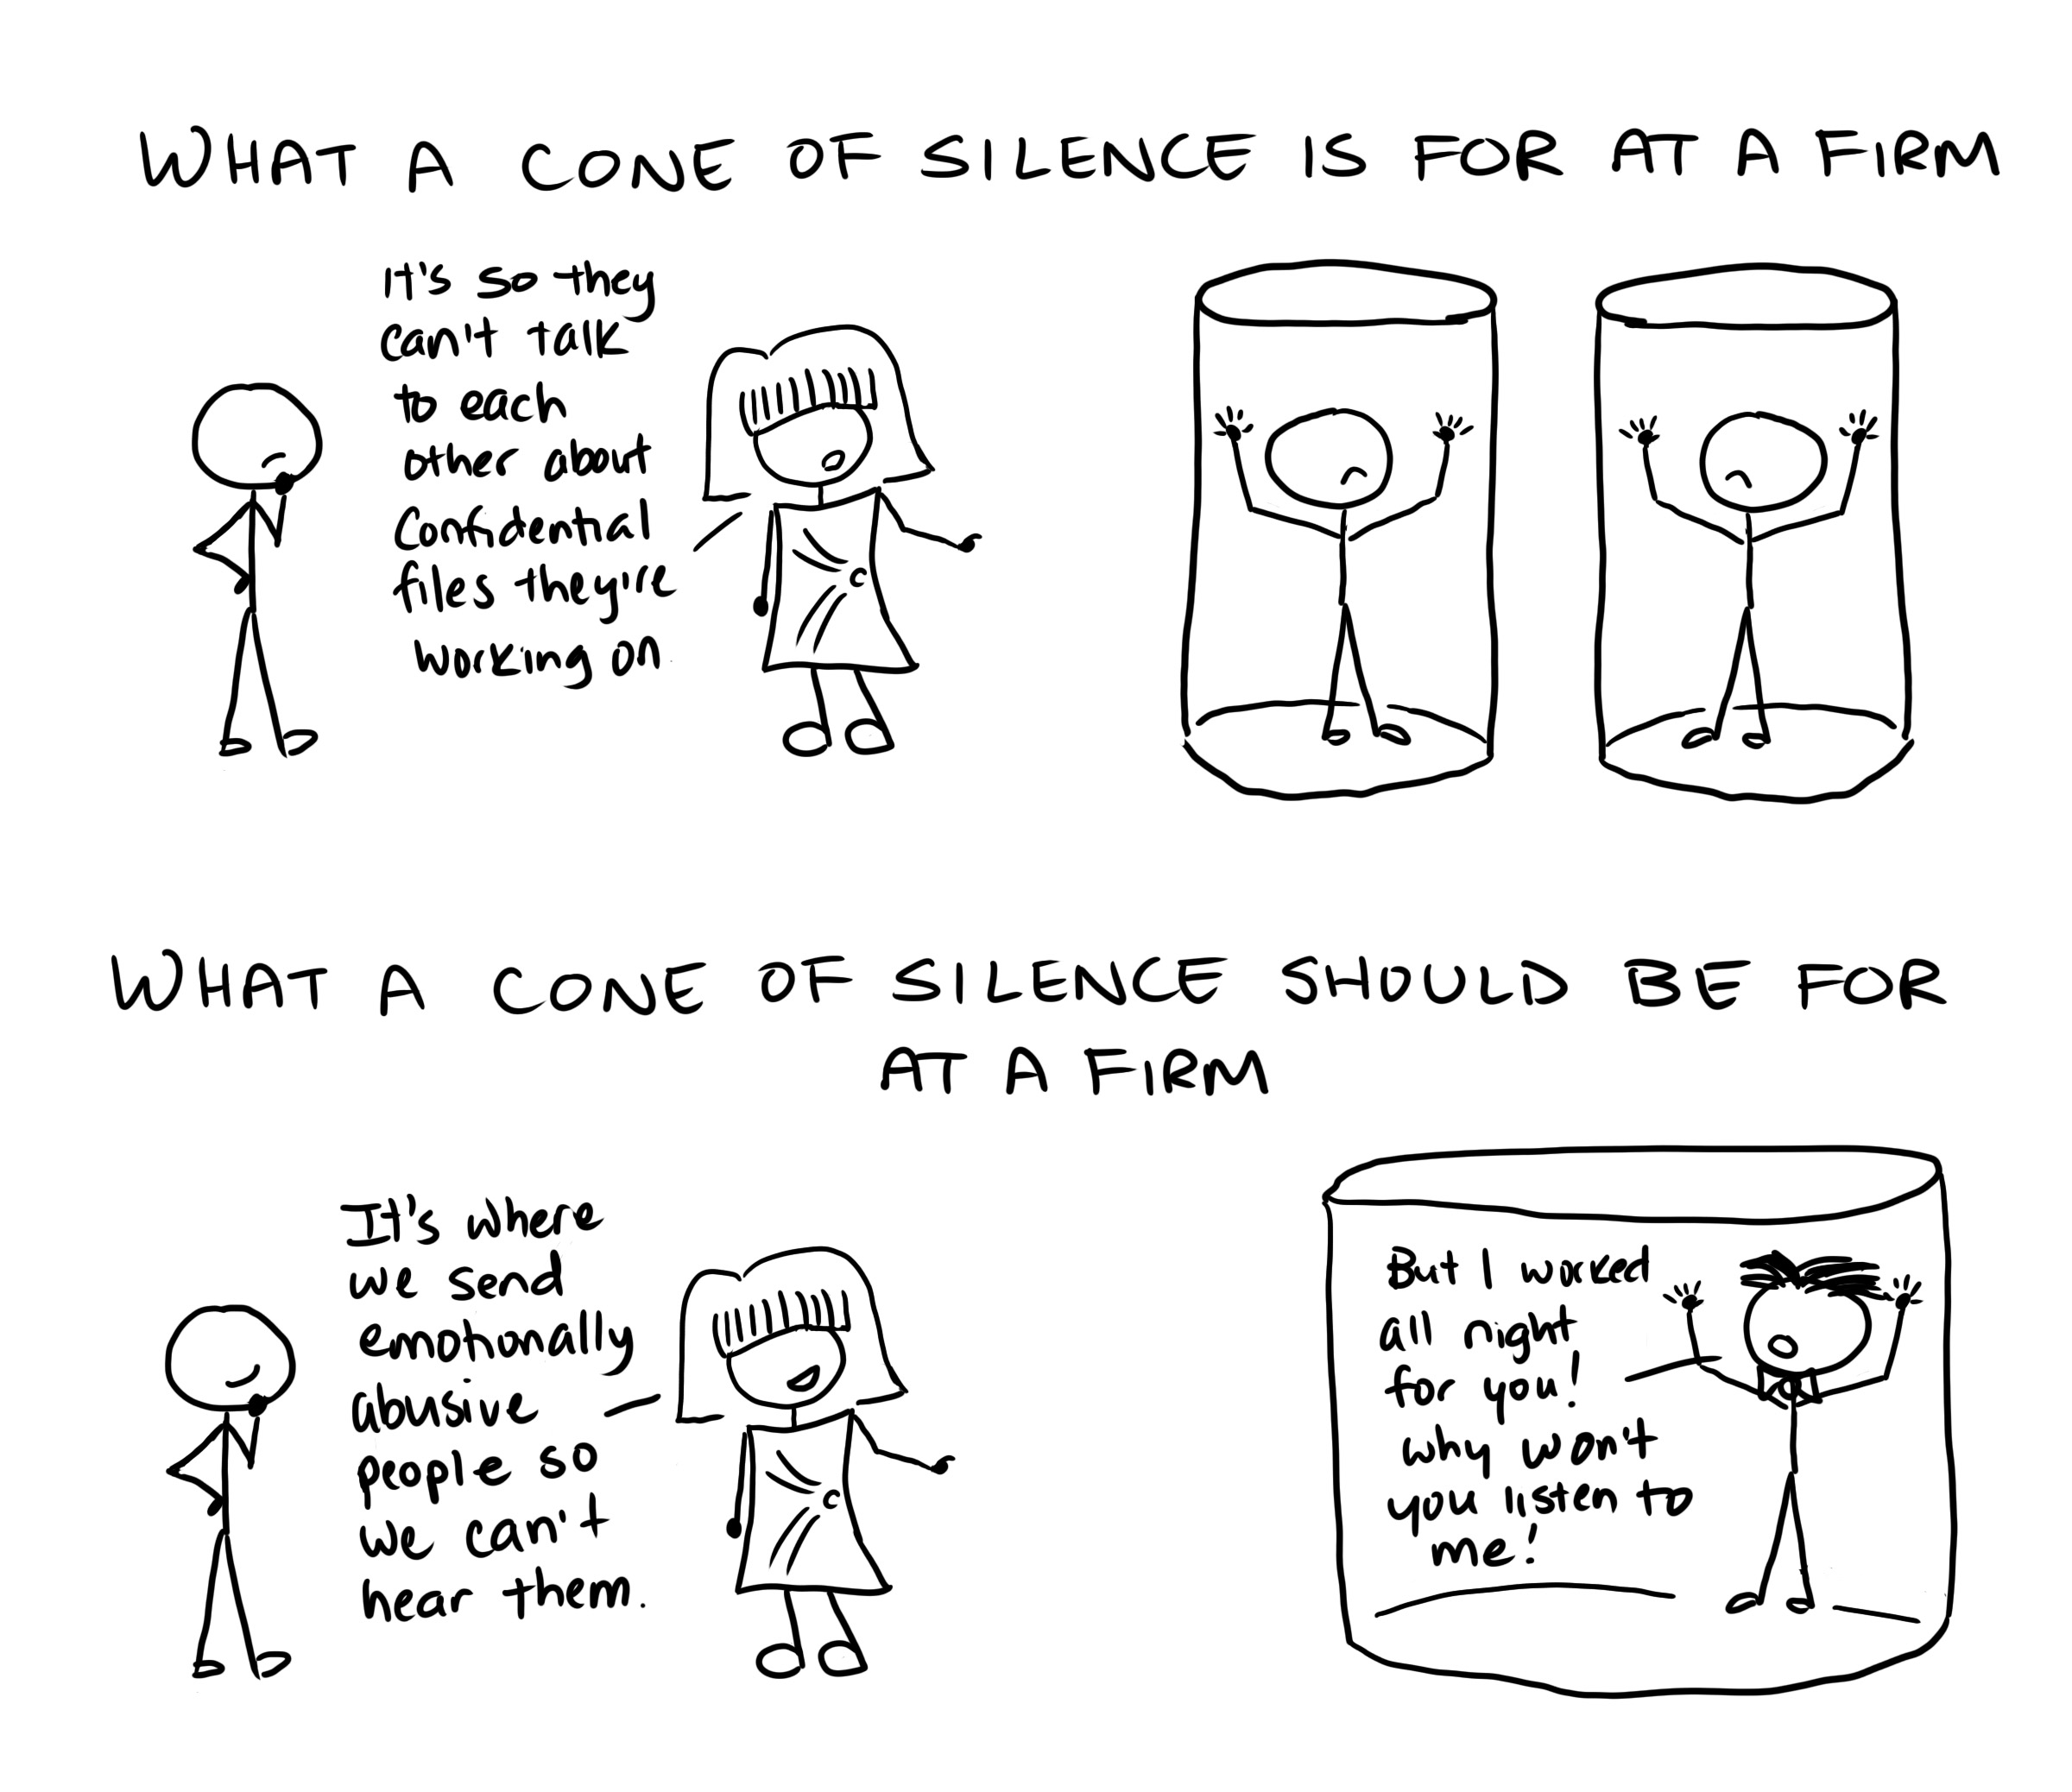 054 - Cone of Silence